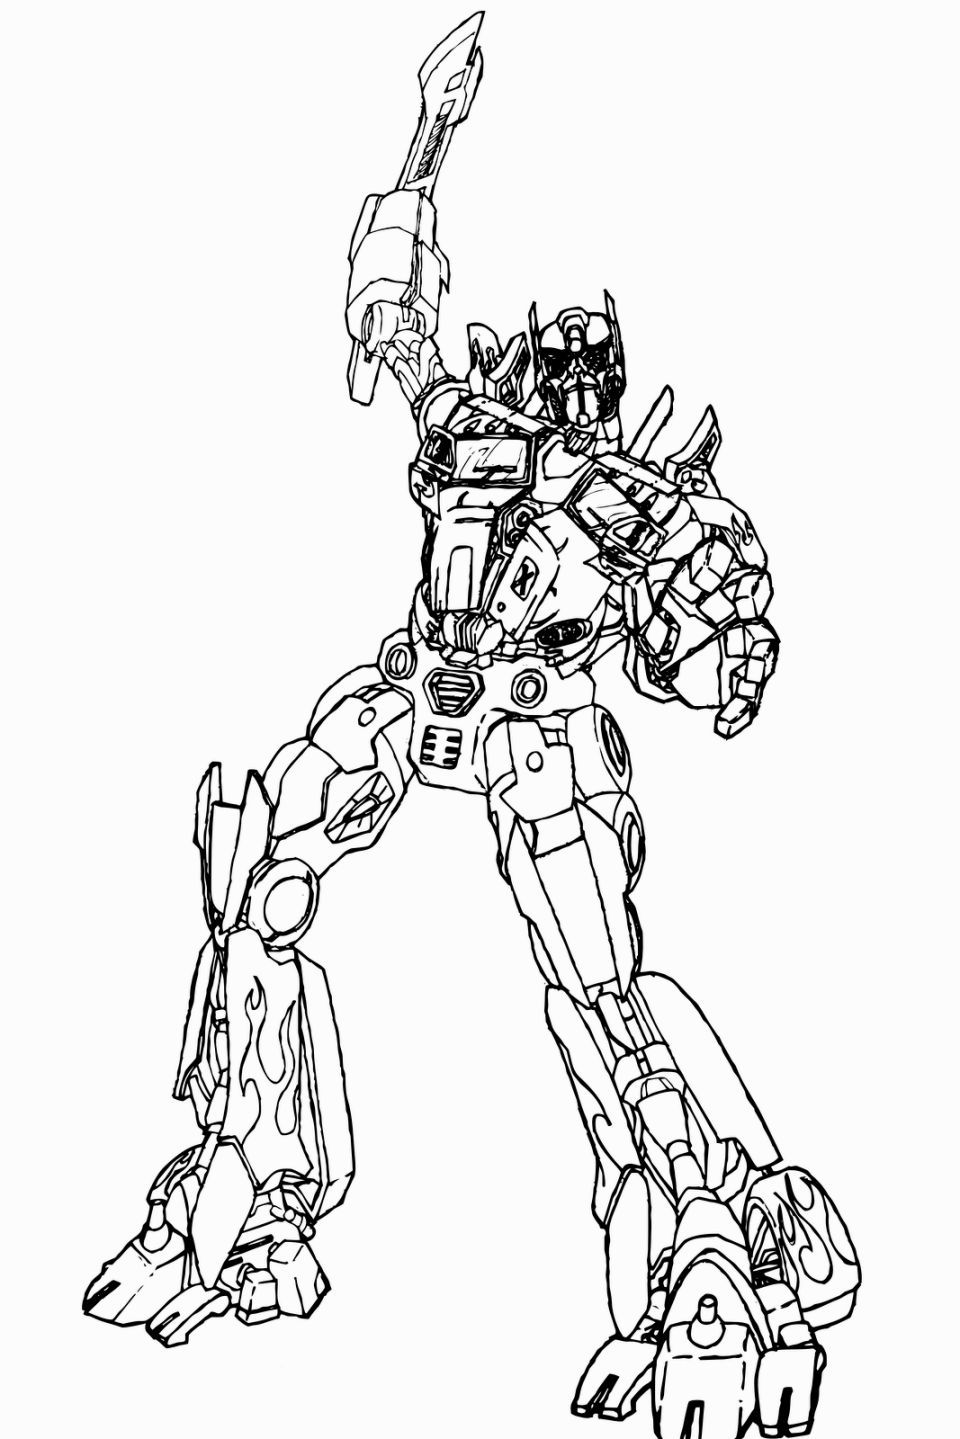 Transformers 4 Coloring Pages Optimus Prime Transformers Coloring Pages Optimus Prime Coloring Page Coloring Pages